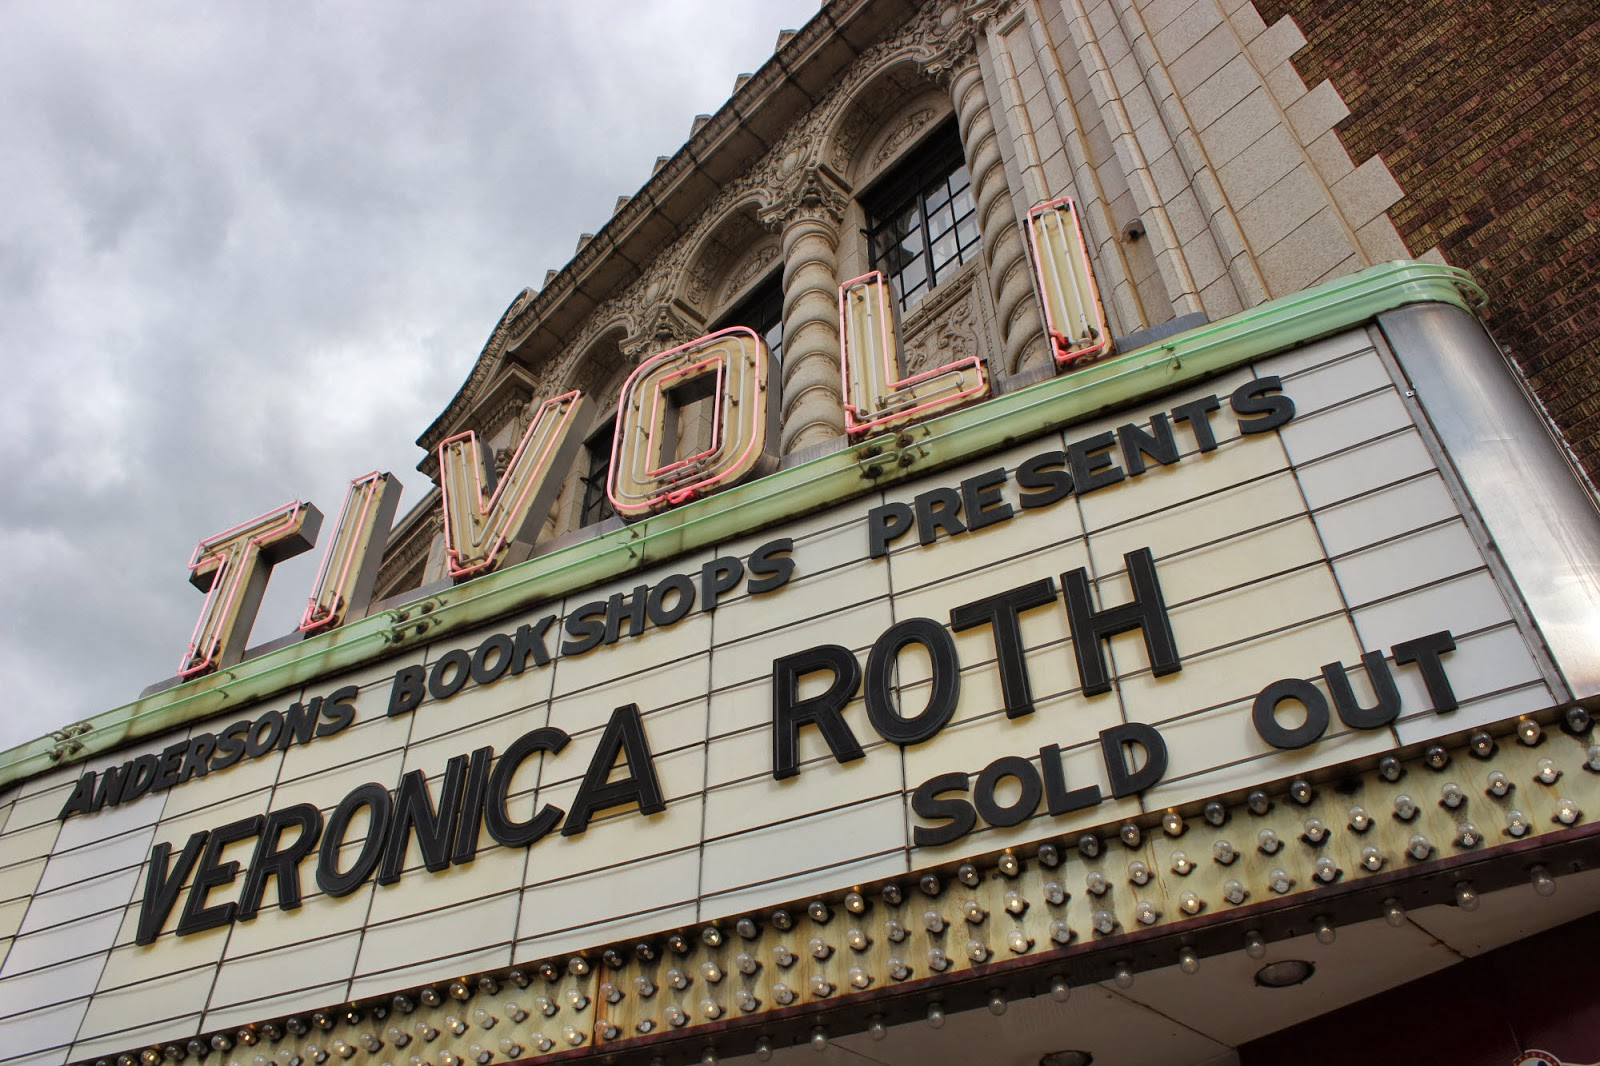 Tivoli Theatre In Downers Grove Il Teen Blog Frvpld Veronica Roth Book Signing At The